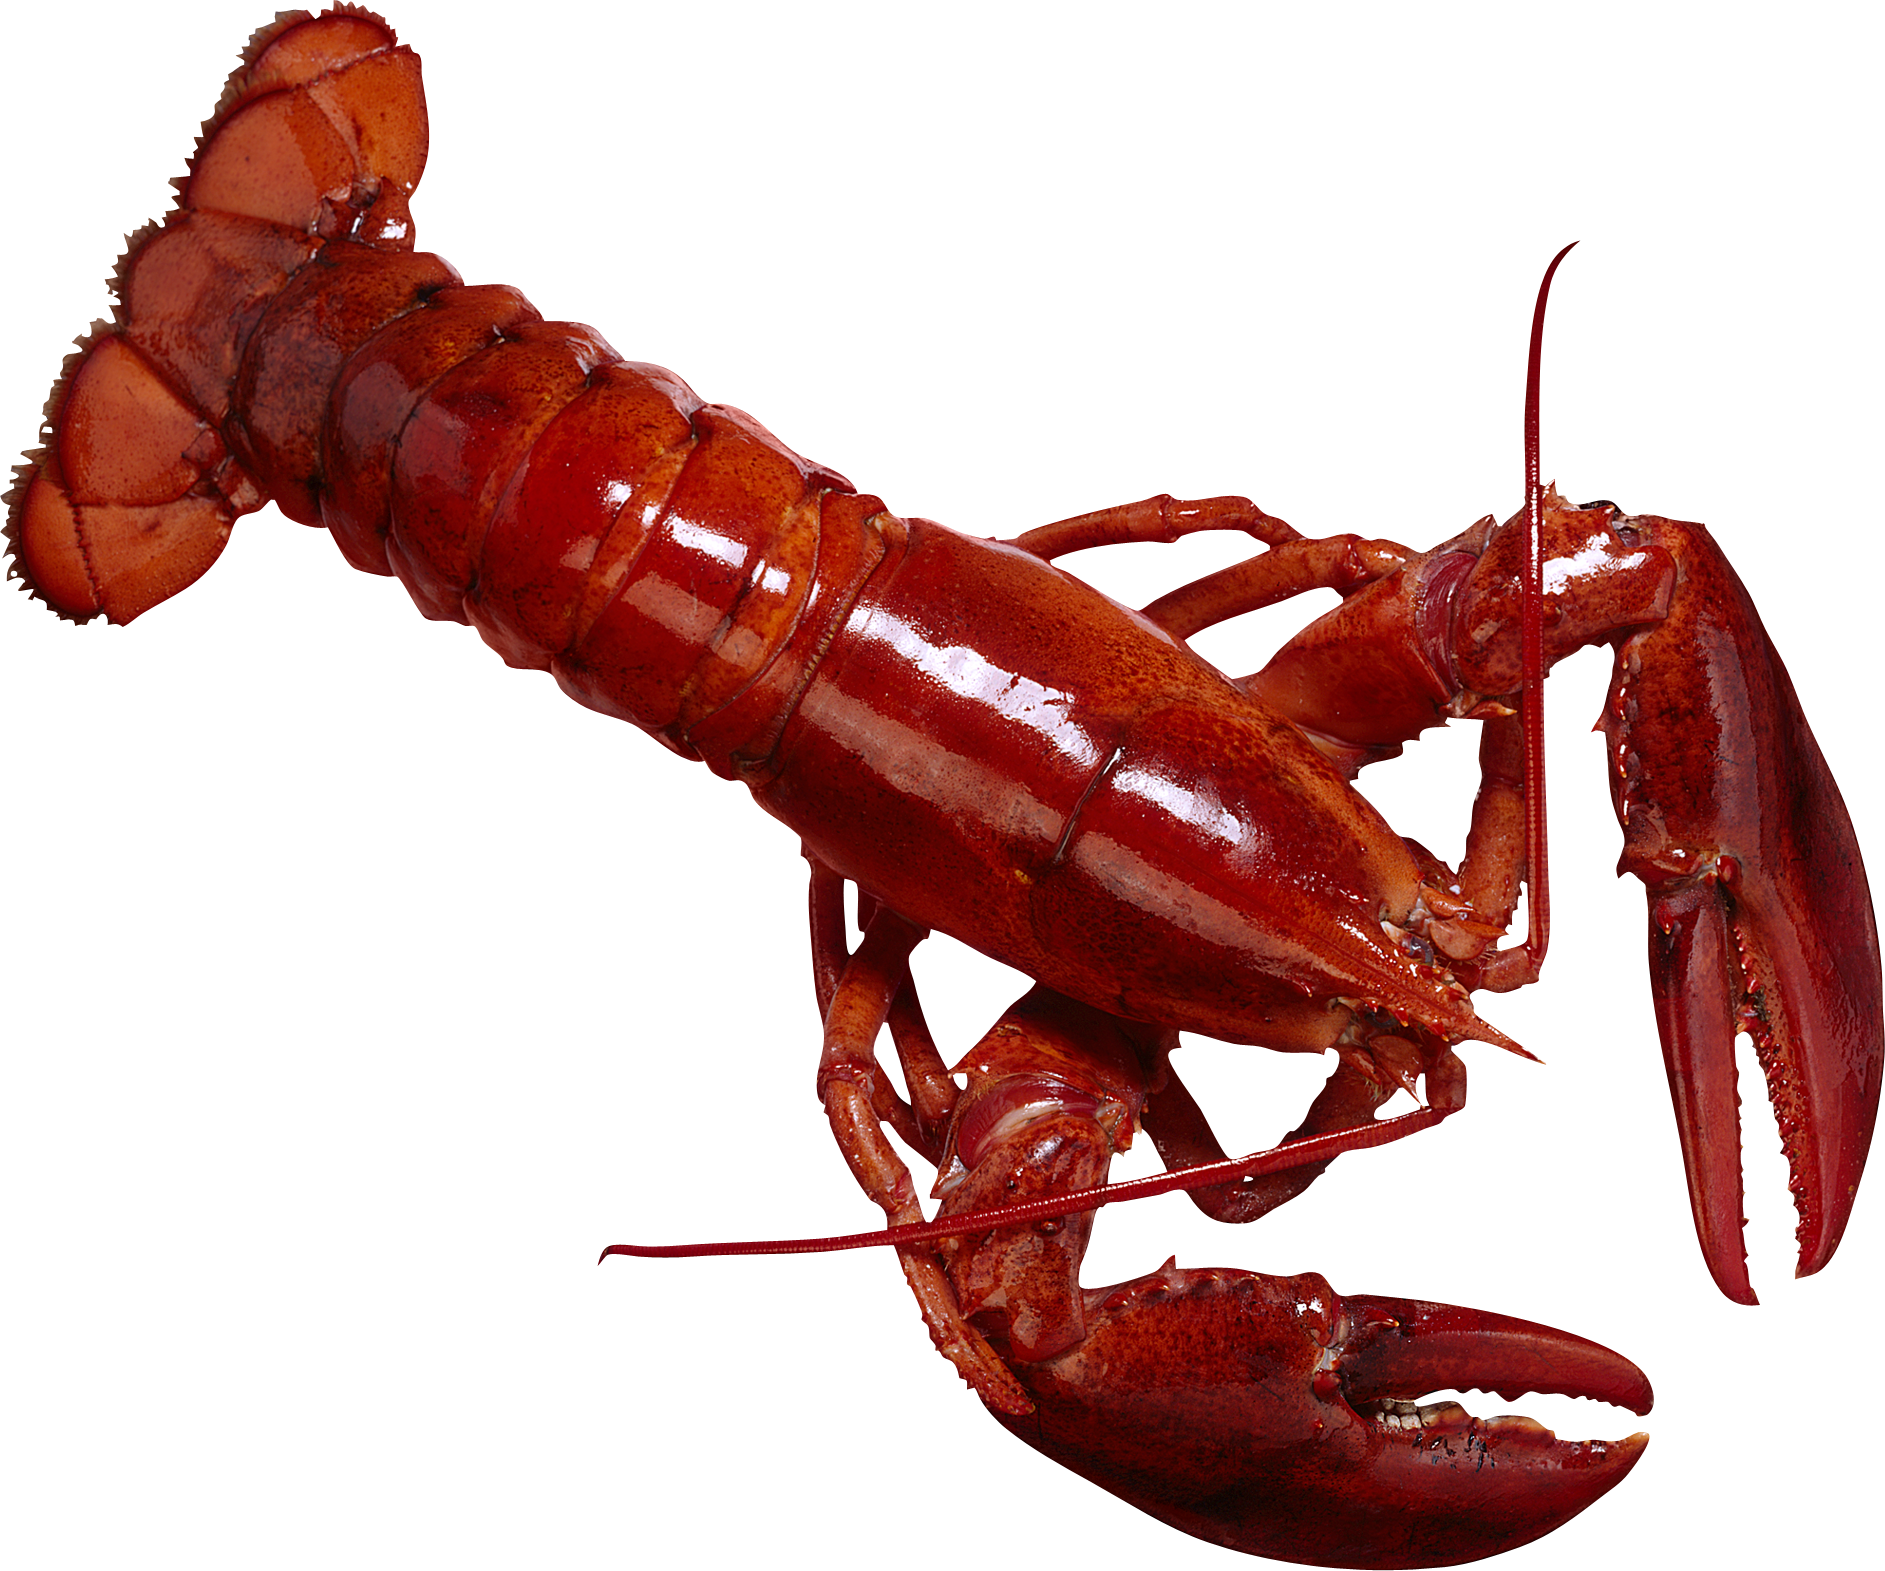 Lobster clipart dancing shrimp. Png animal pinterest